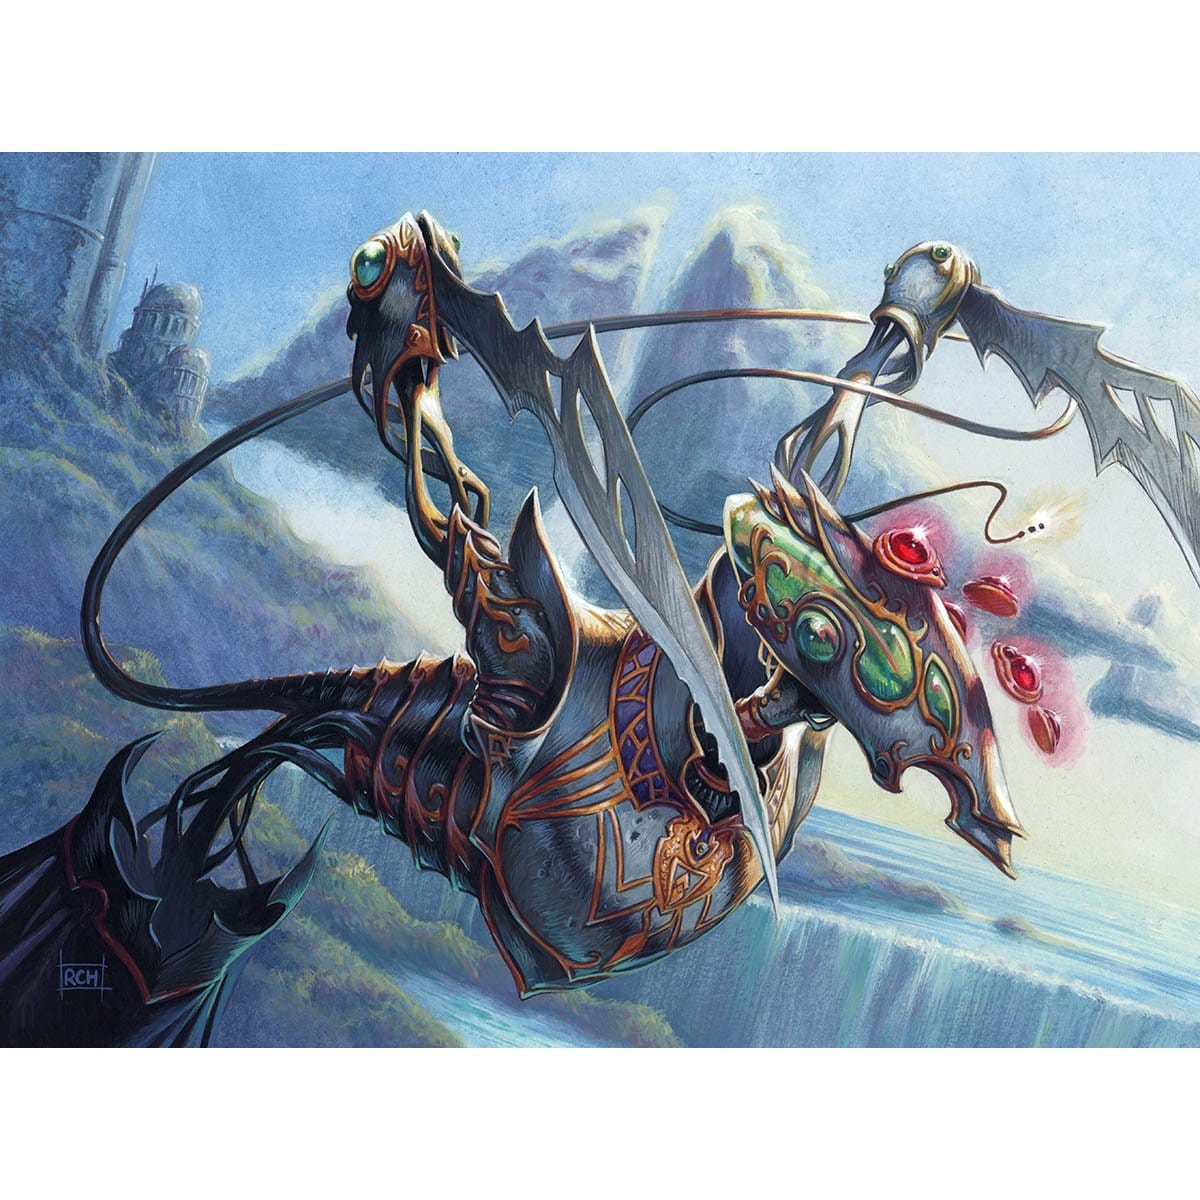 Arsenal Thresher Print - Print - Original Magic Art - Accessories for Magic the Gathering and other card games